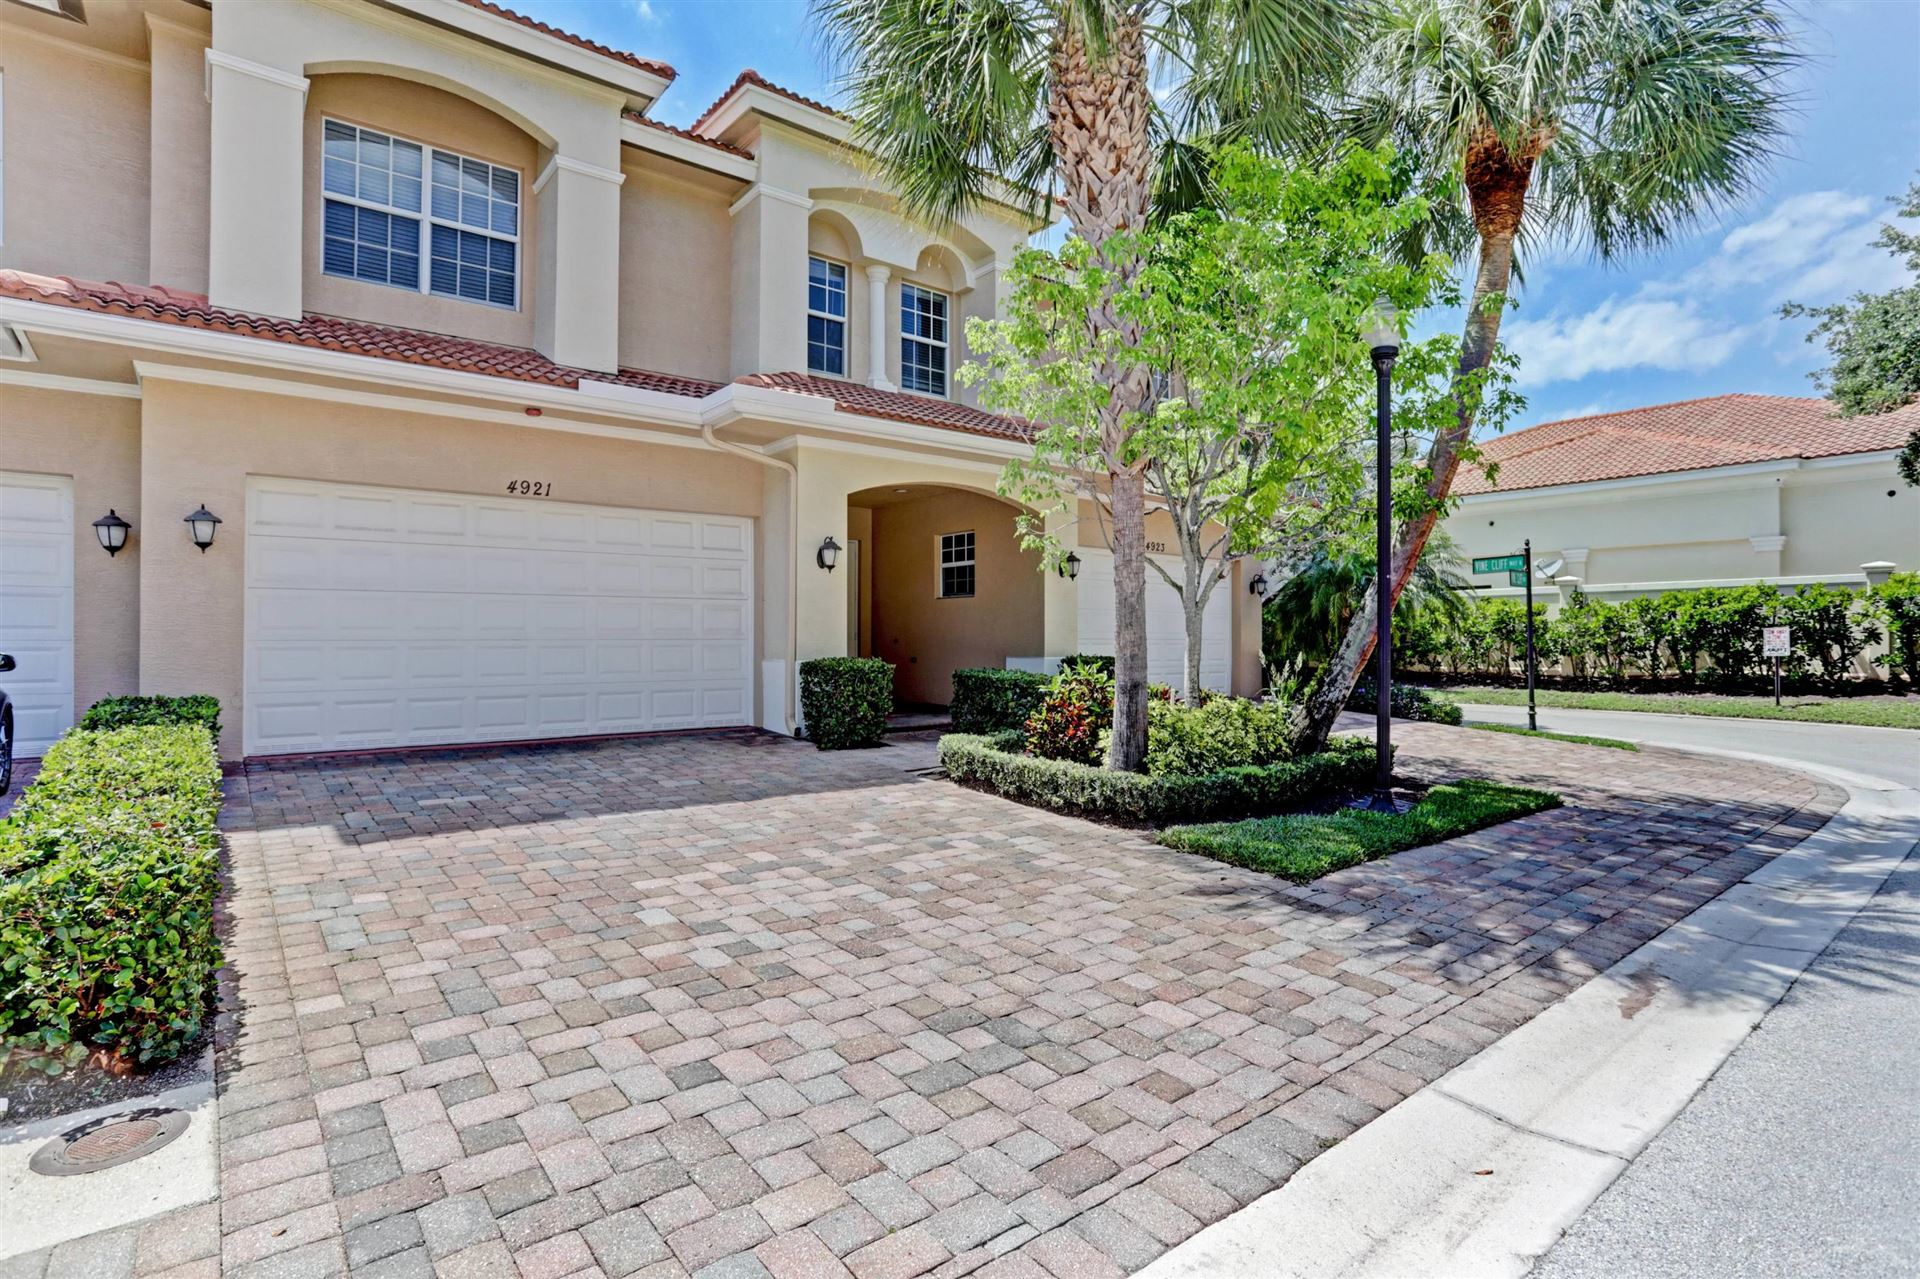 4921 Vine Cliff Way E, Palm Beach Gardens, FL 33418 - #: RX-10714616